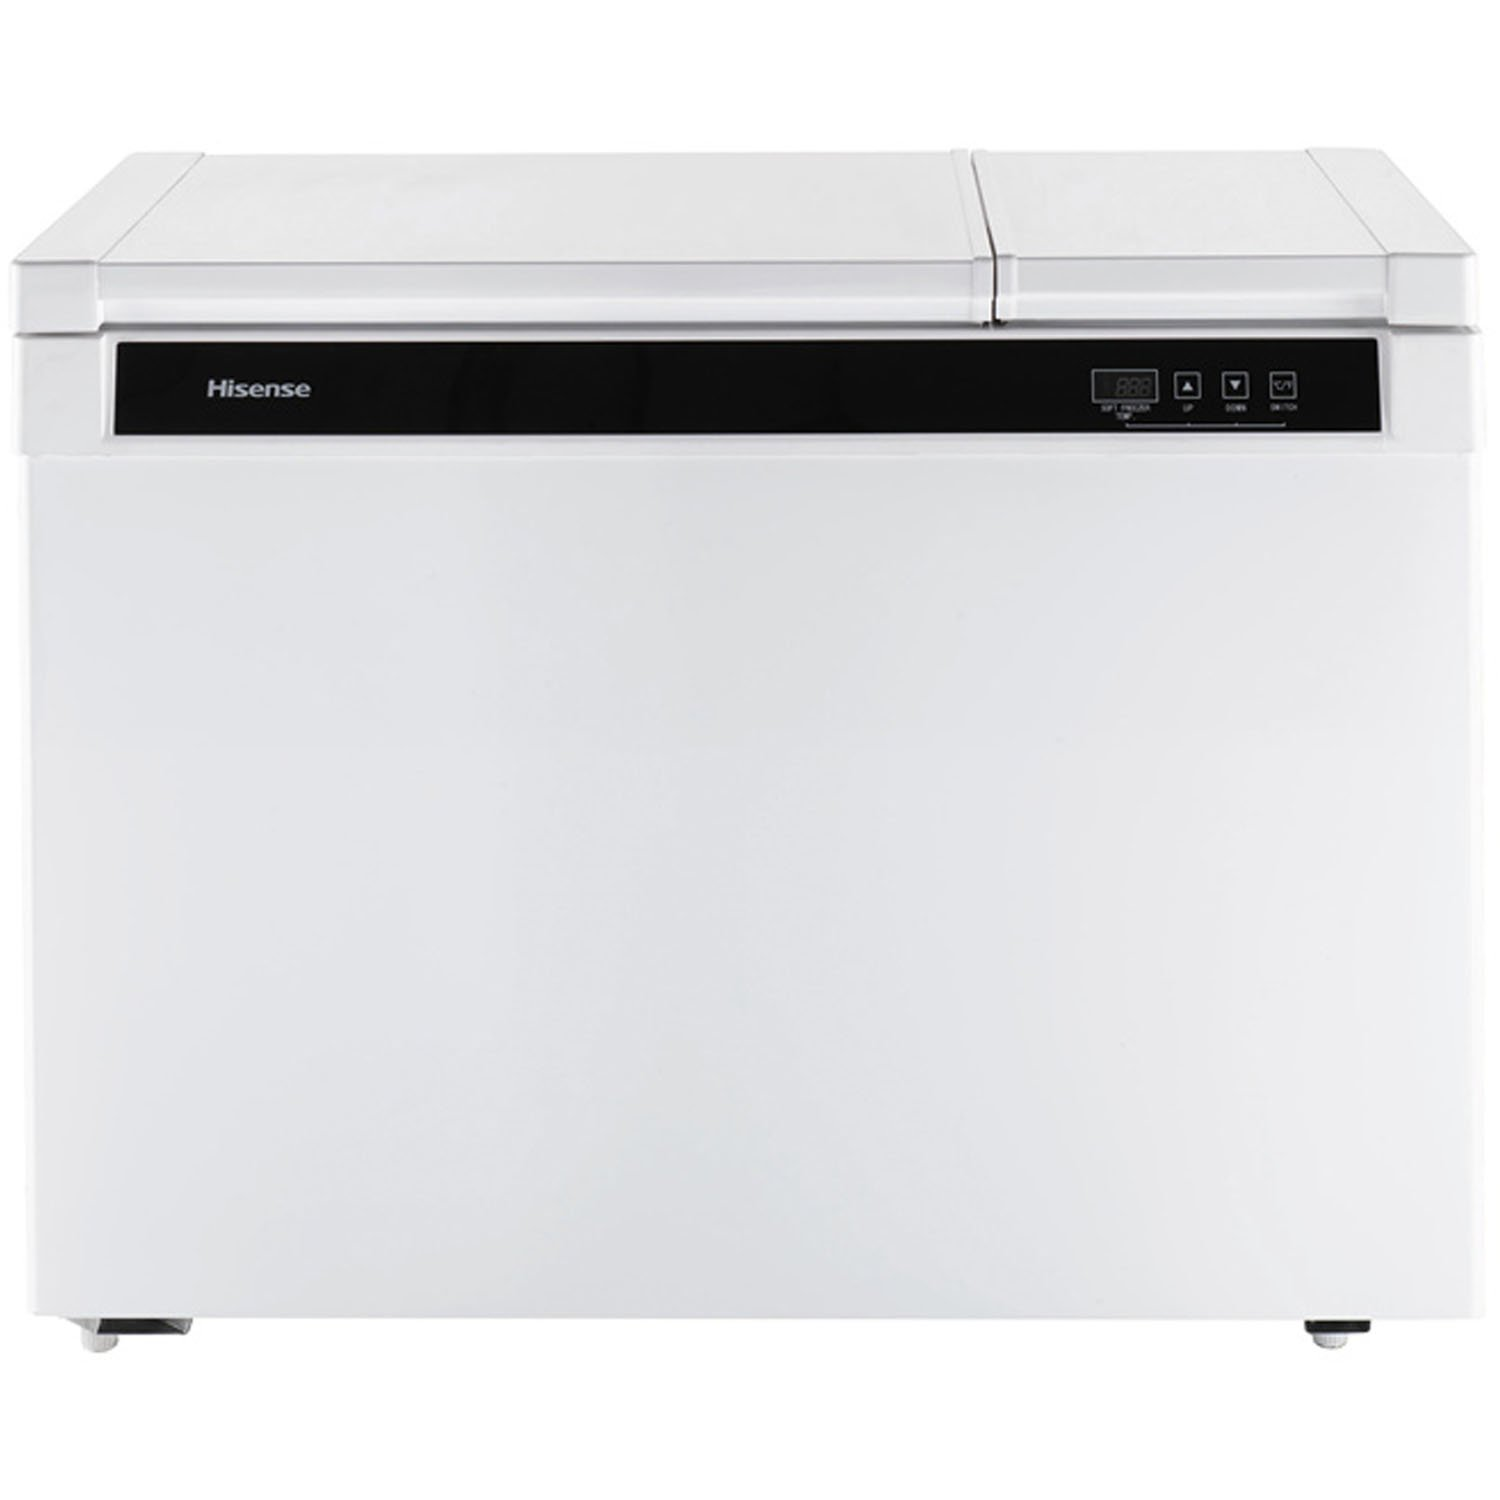 Hisense FD90D6AWD Dual Zone Chest Freezer, 9 cu. ft., White